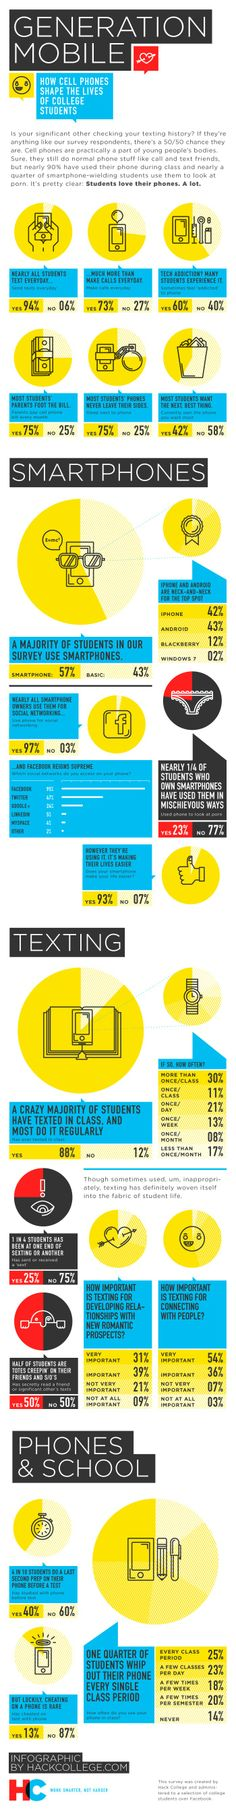 How Cell Phones Shape the Lives of College Students Infographic